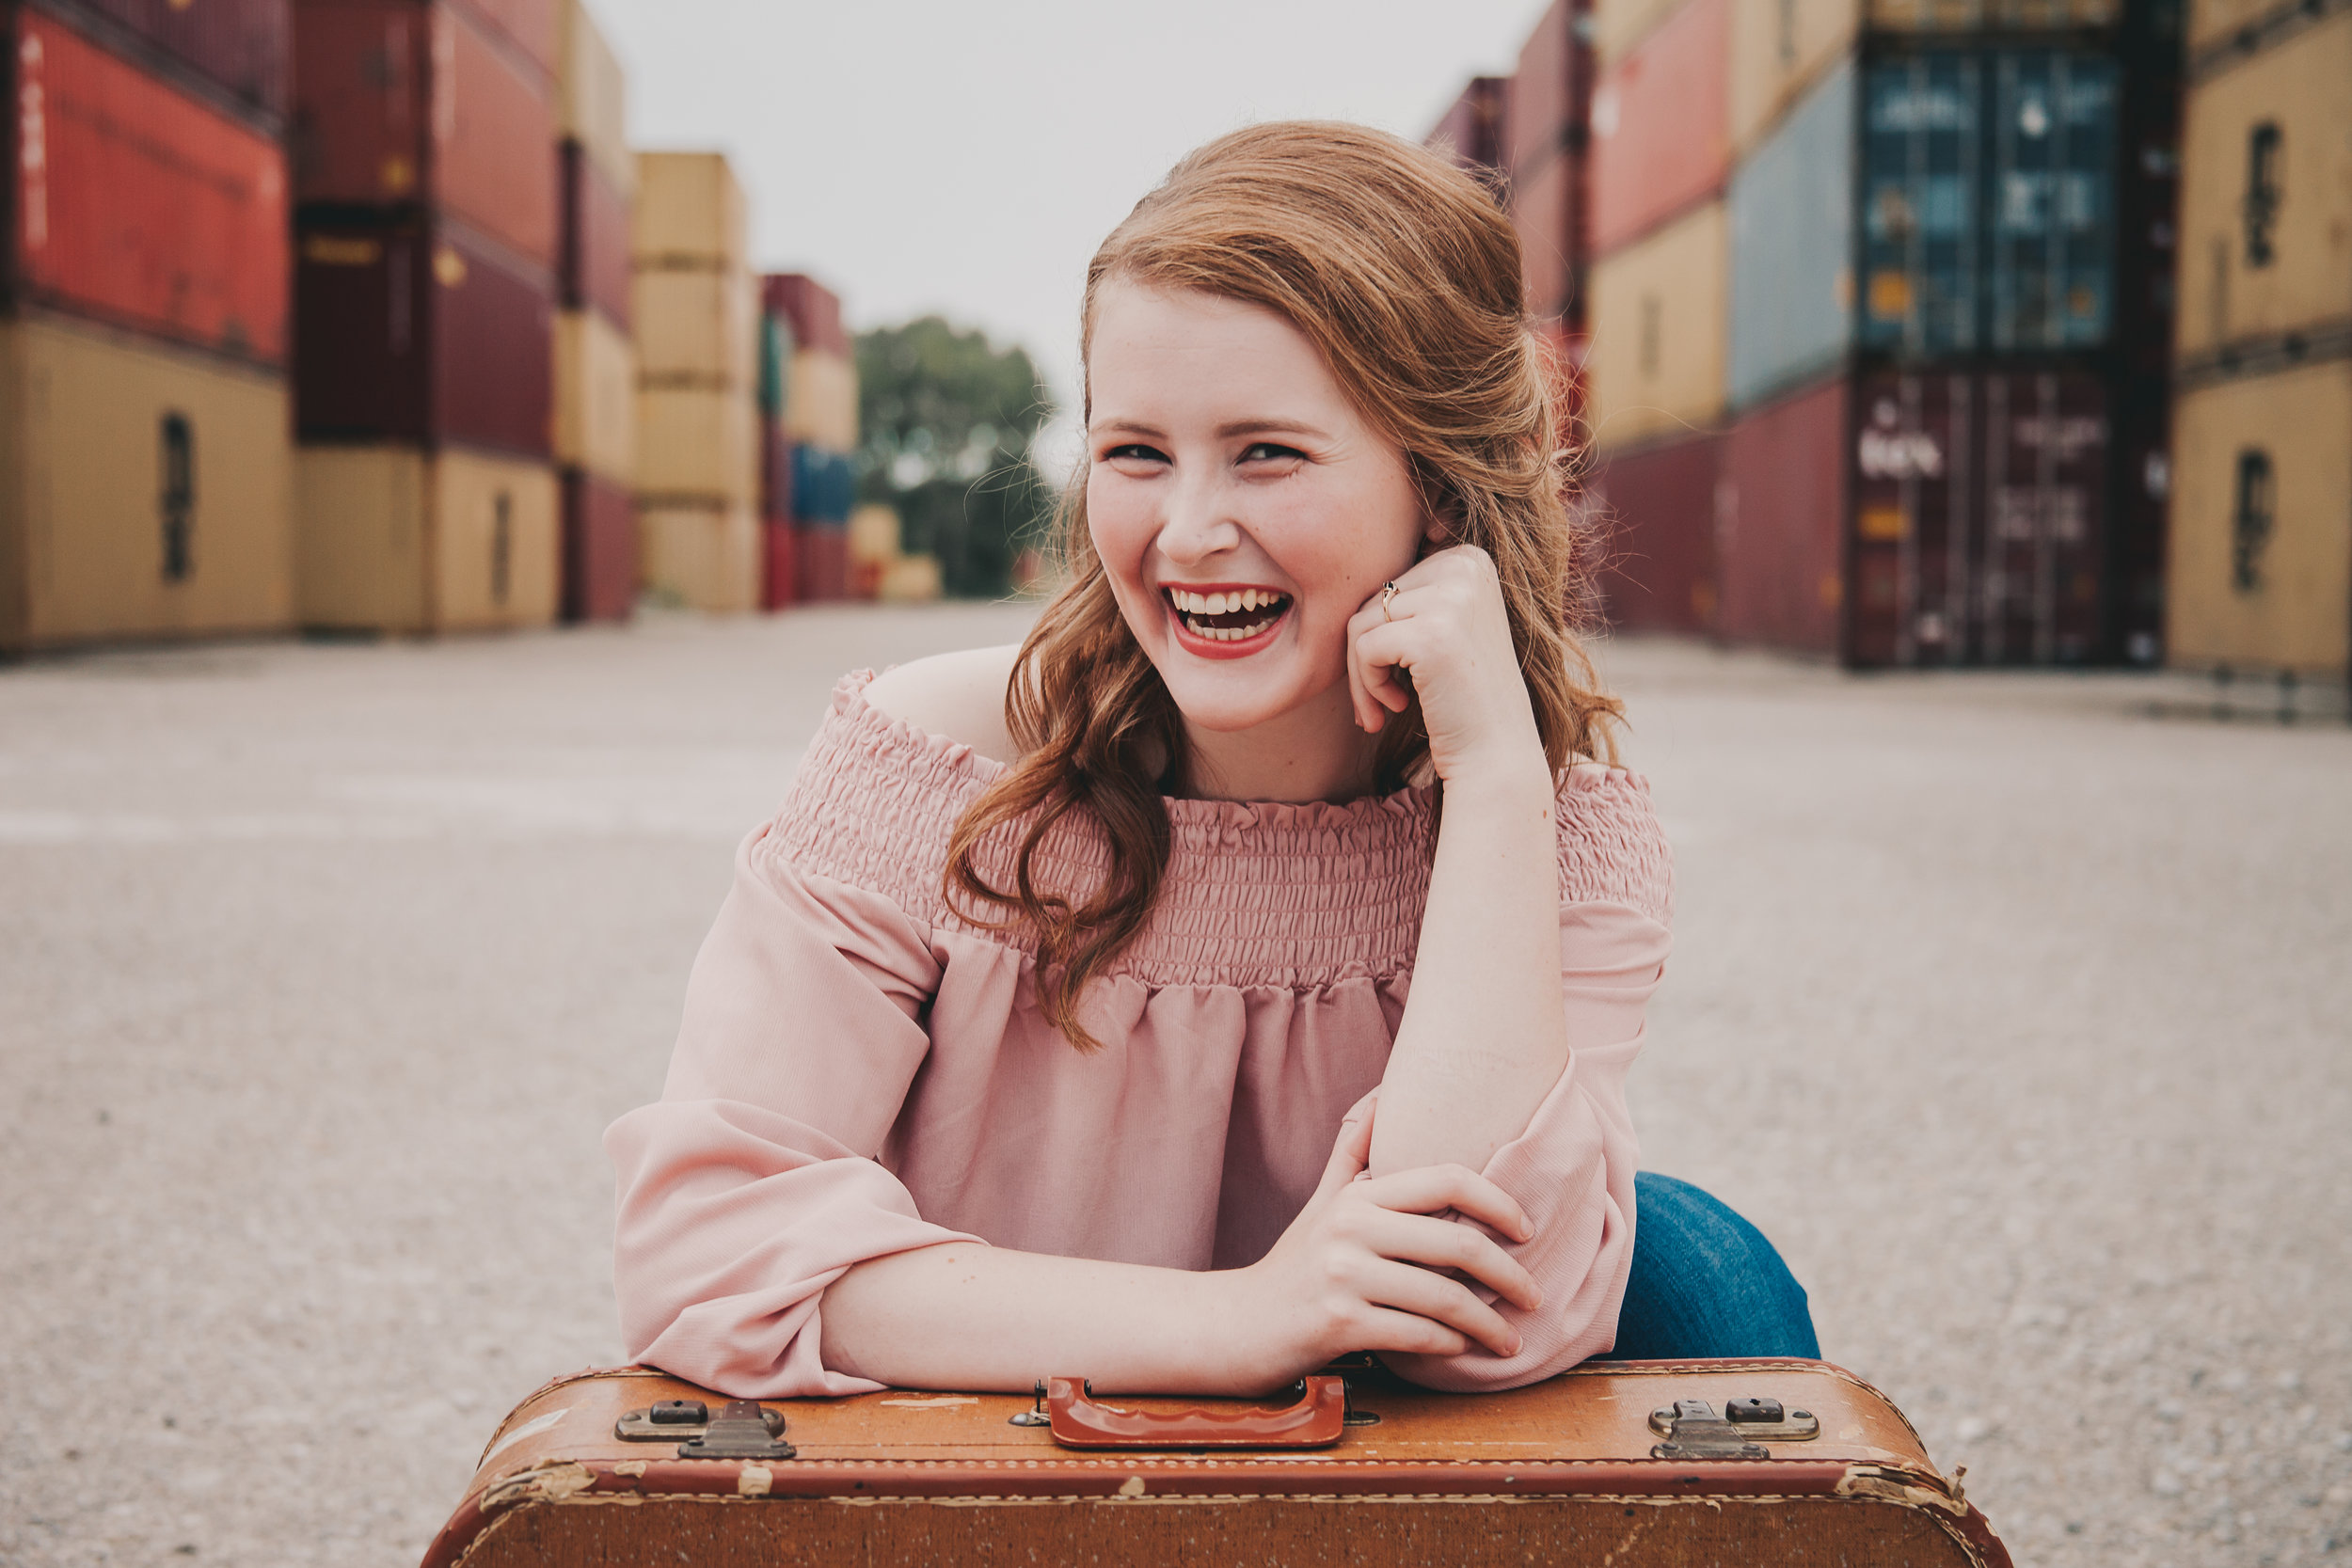 High school senior girl poses with vintage suitcase in front of colorful shipping containers. © Merry Ohler Creative, 2019. Photo by Merry Ohler, who is the best wedding photographer in Kansas City.